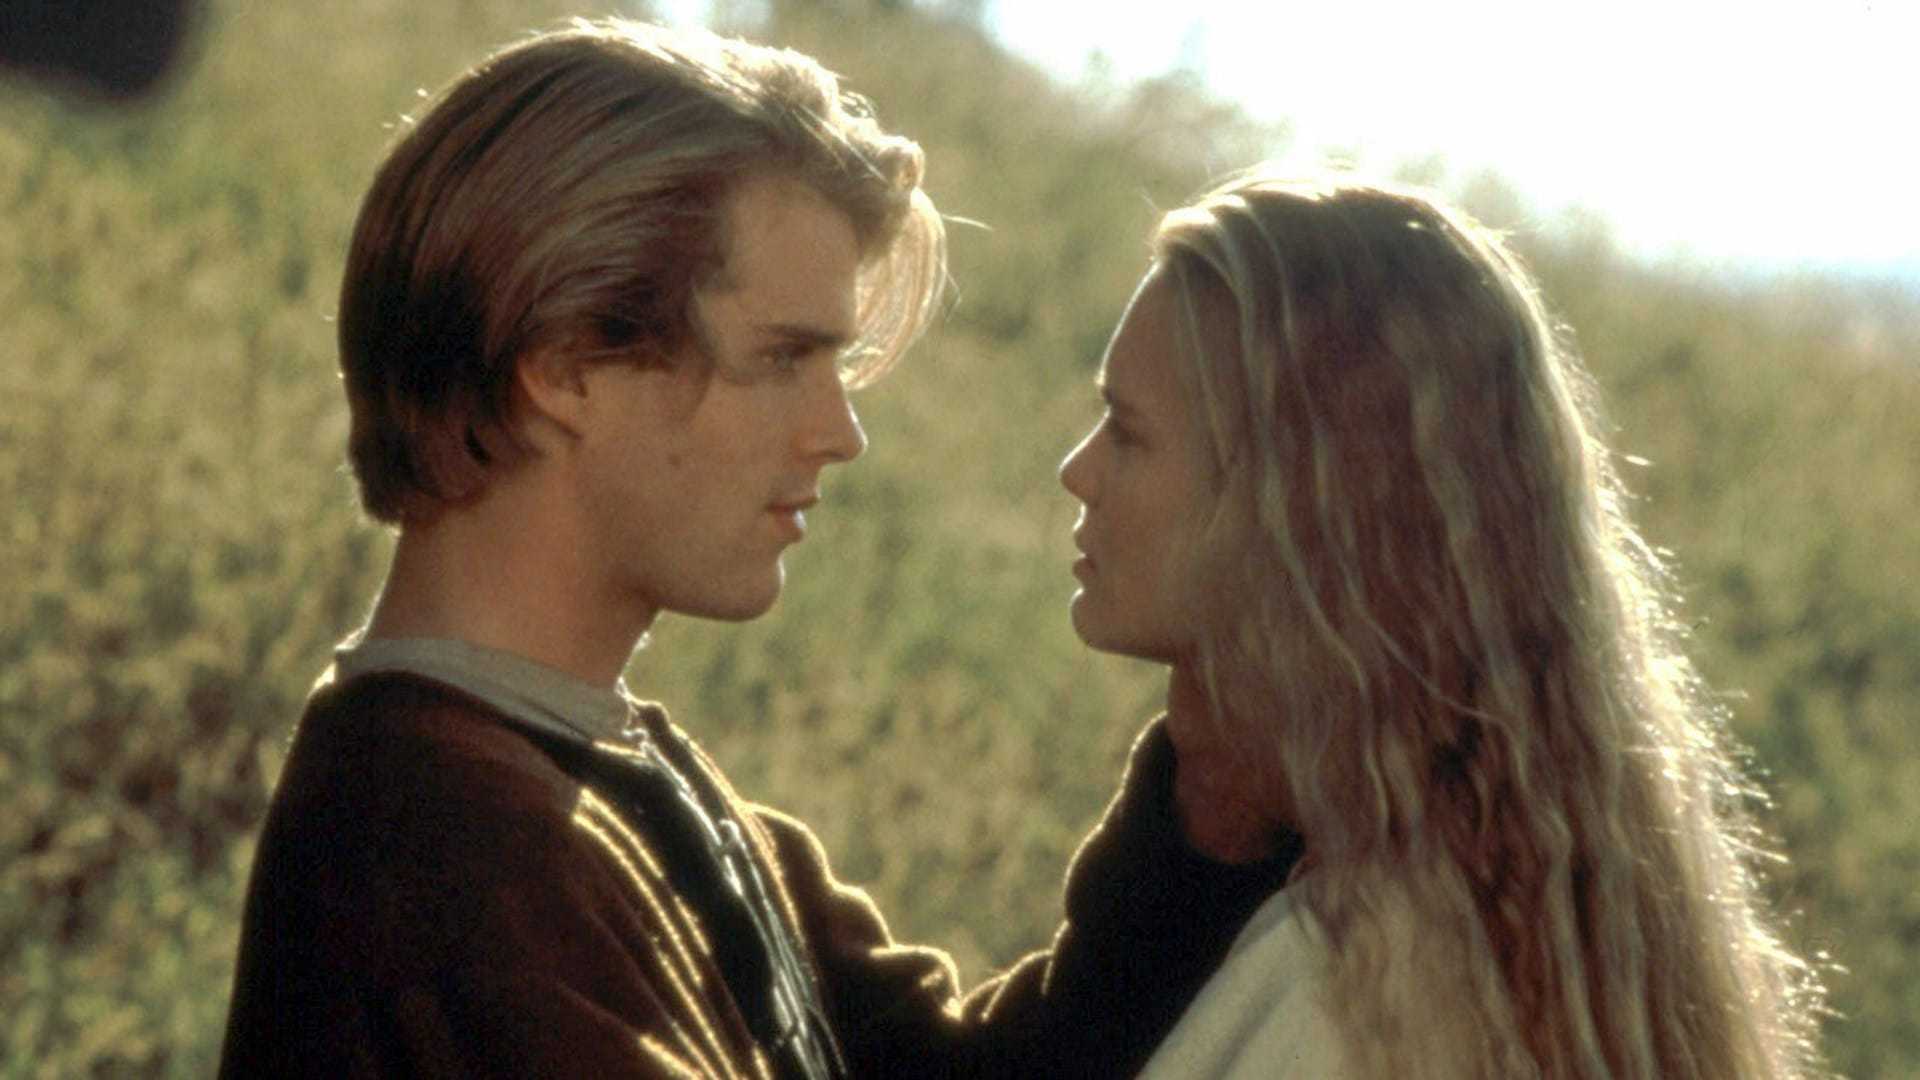 Image: The Princess Bride/TMDb